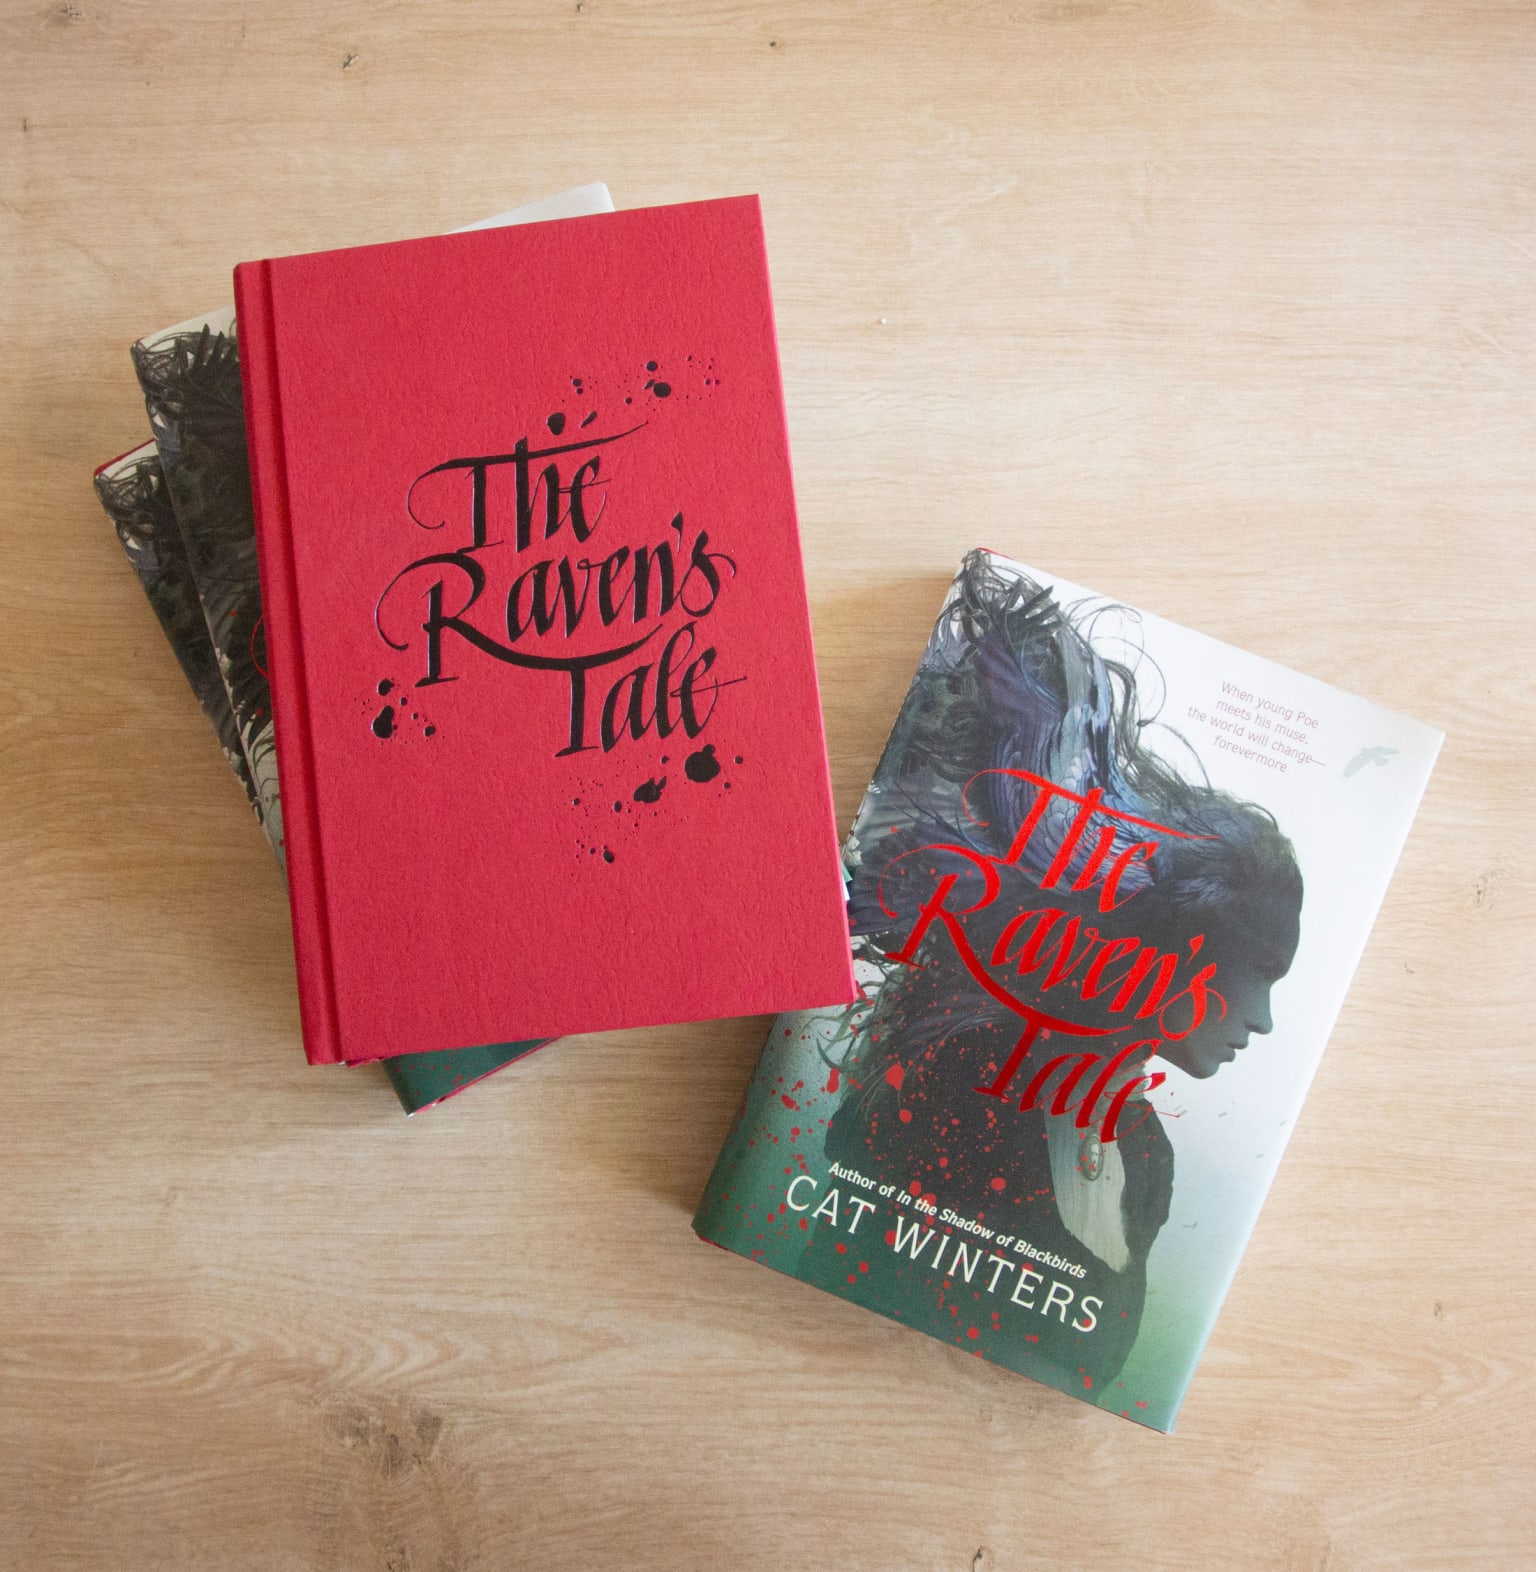 The Raven's Tale lettering